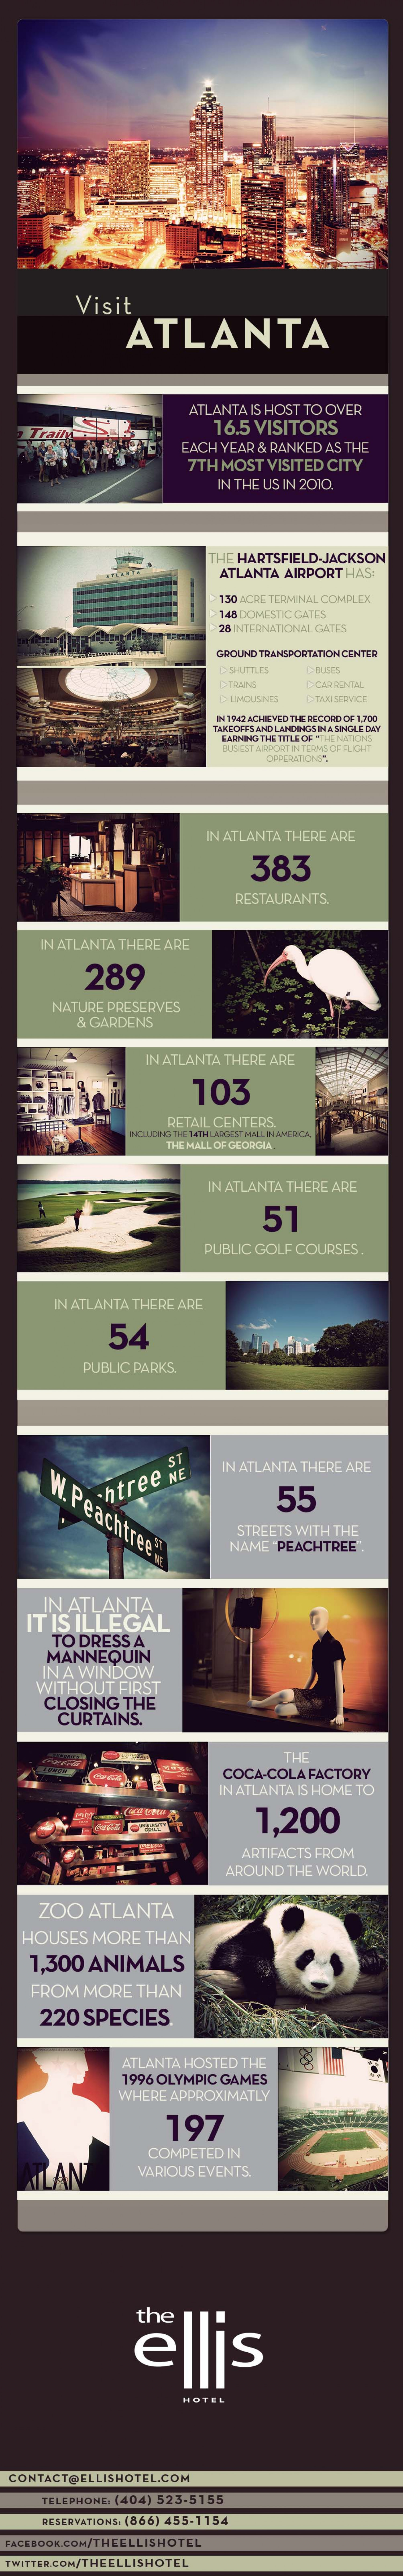 Visit Atlanta: An Infographic on The Big Peach Infographic